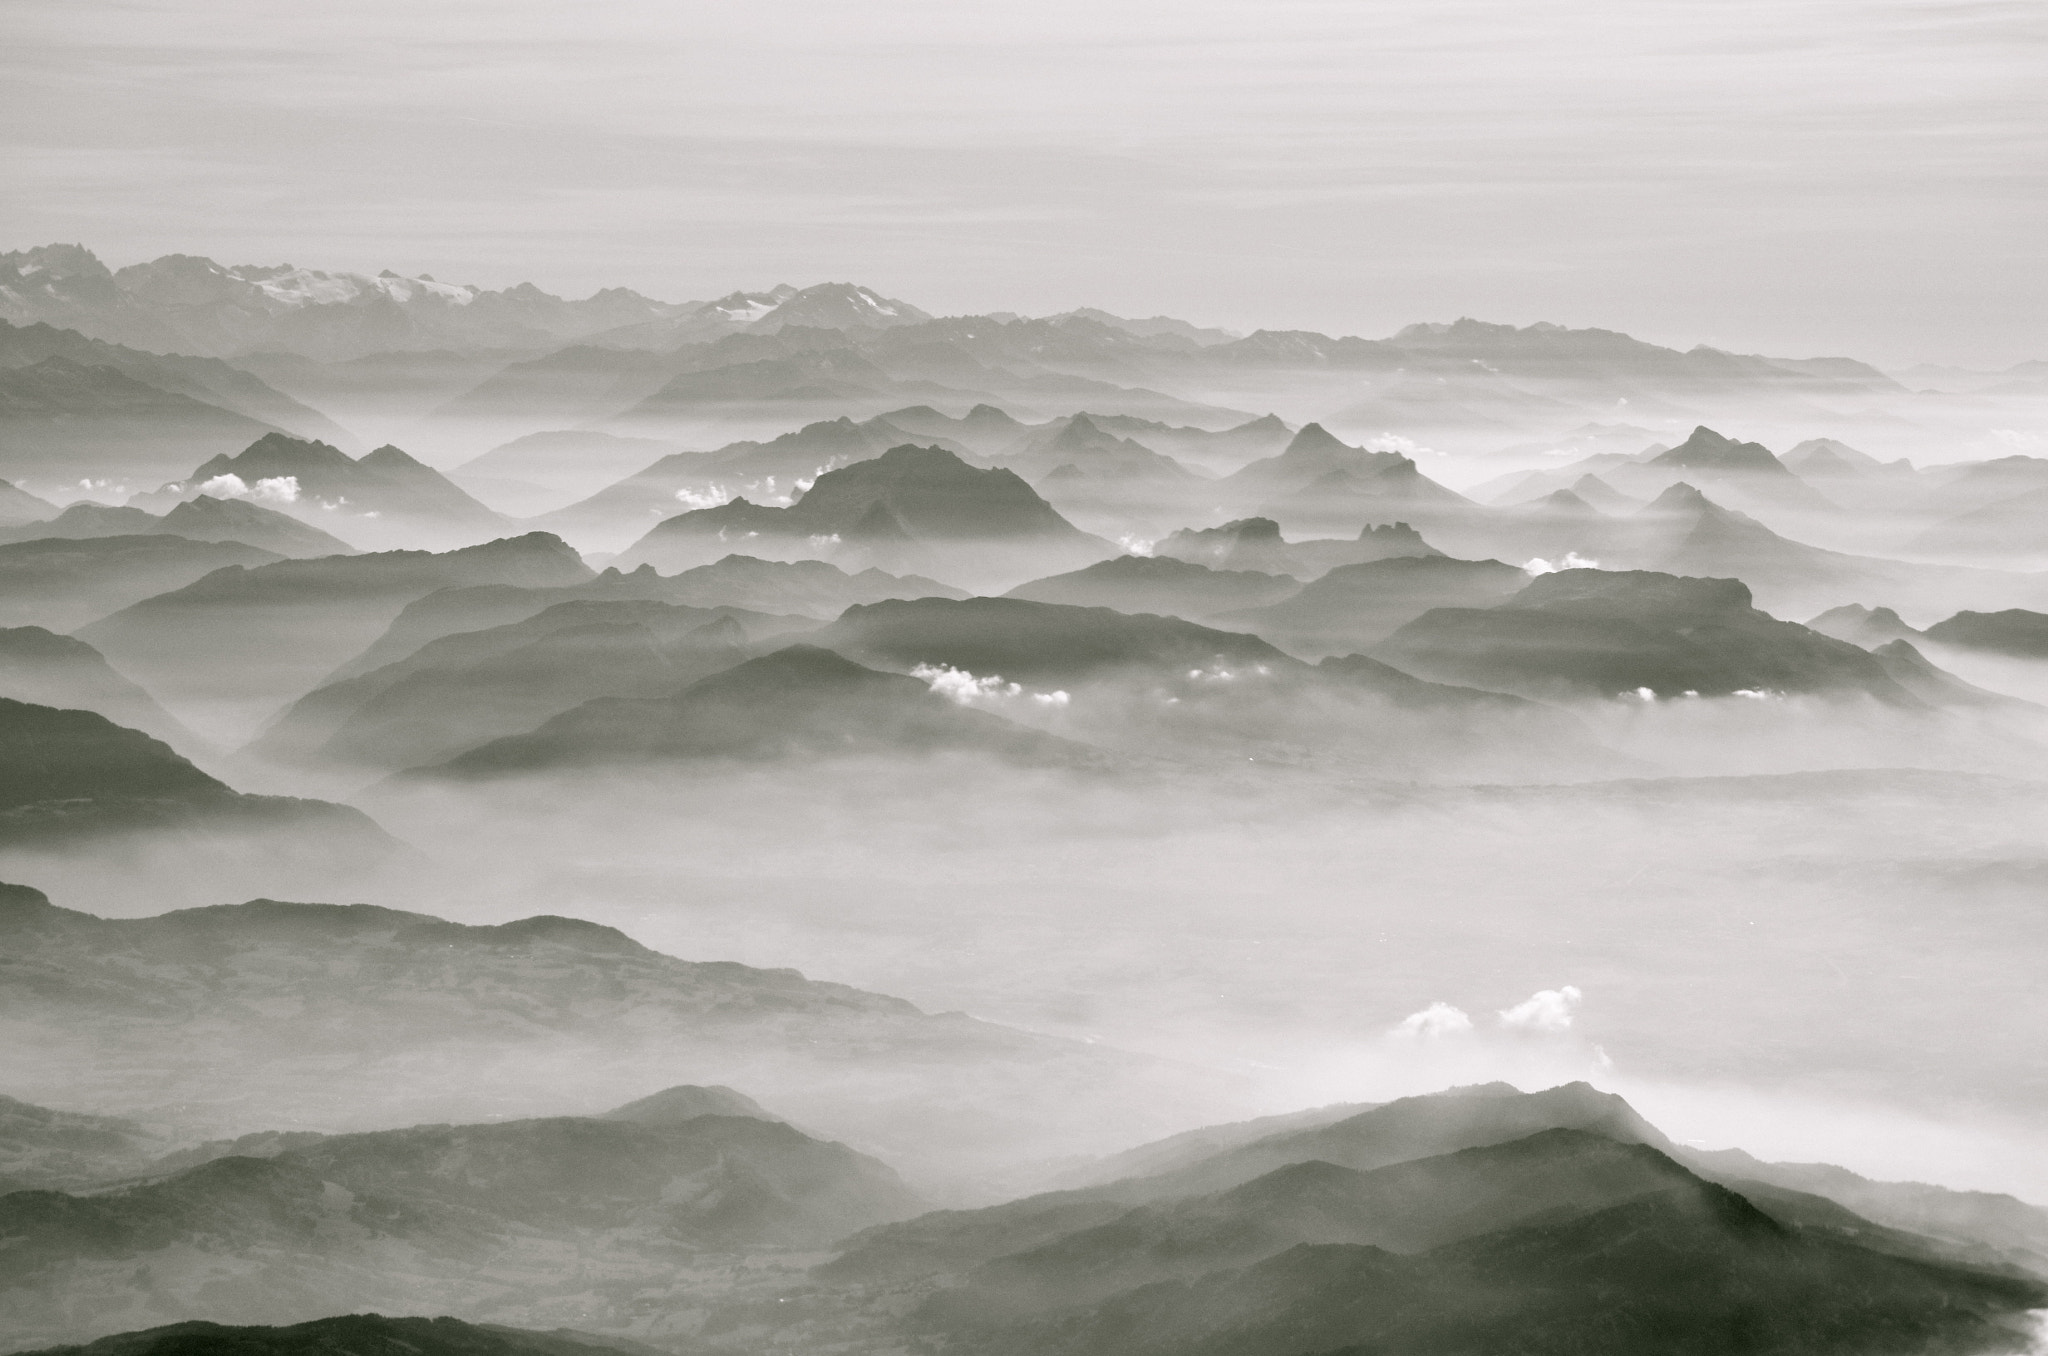 Photograph Cloudy mountains by Niels Renard on 500px